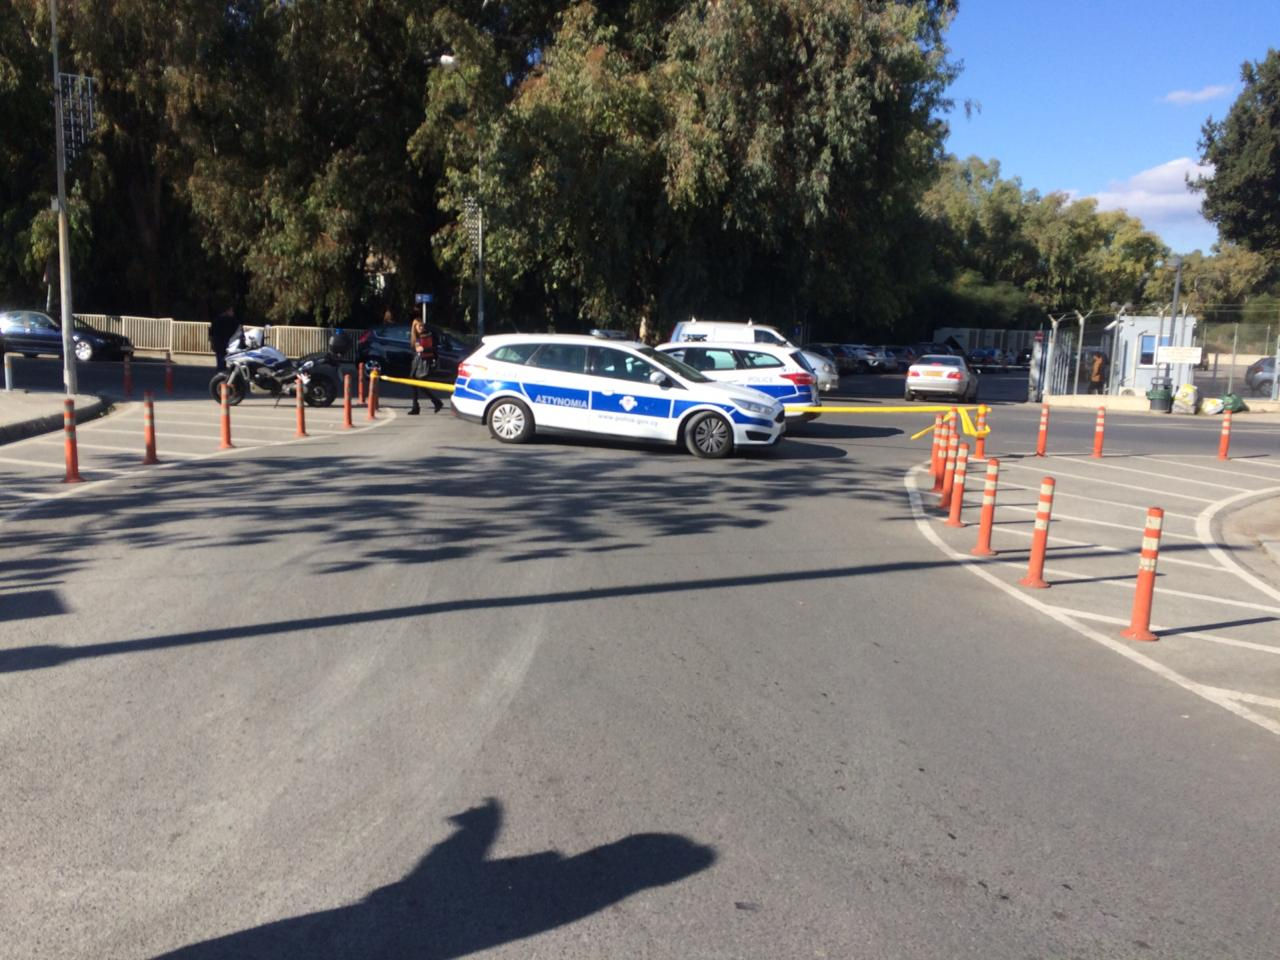 Bomb scare at American academy school in Nicosia, Cyprus. School evacuated 28